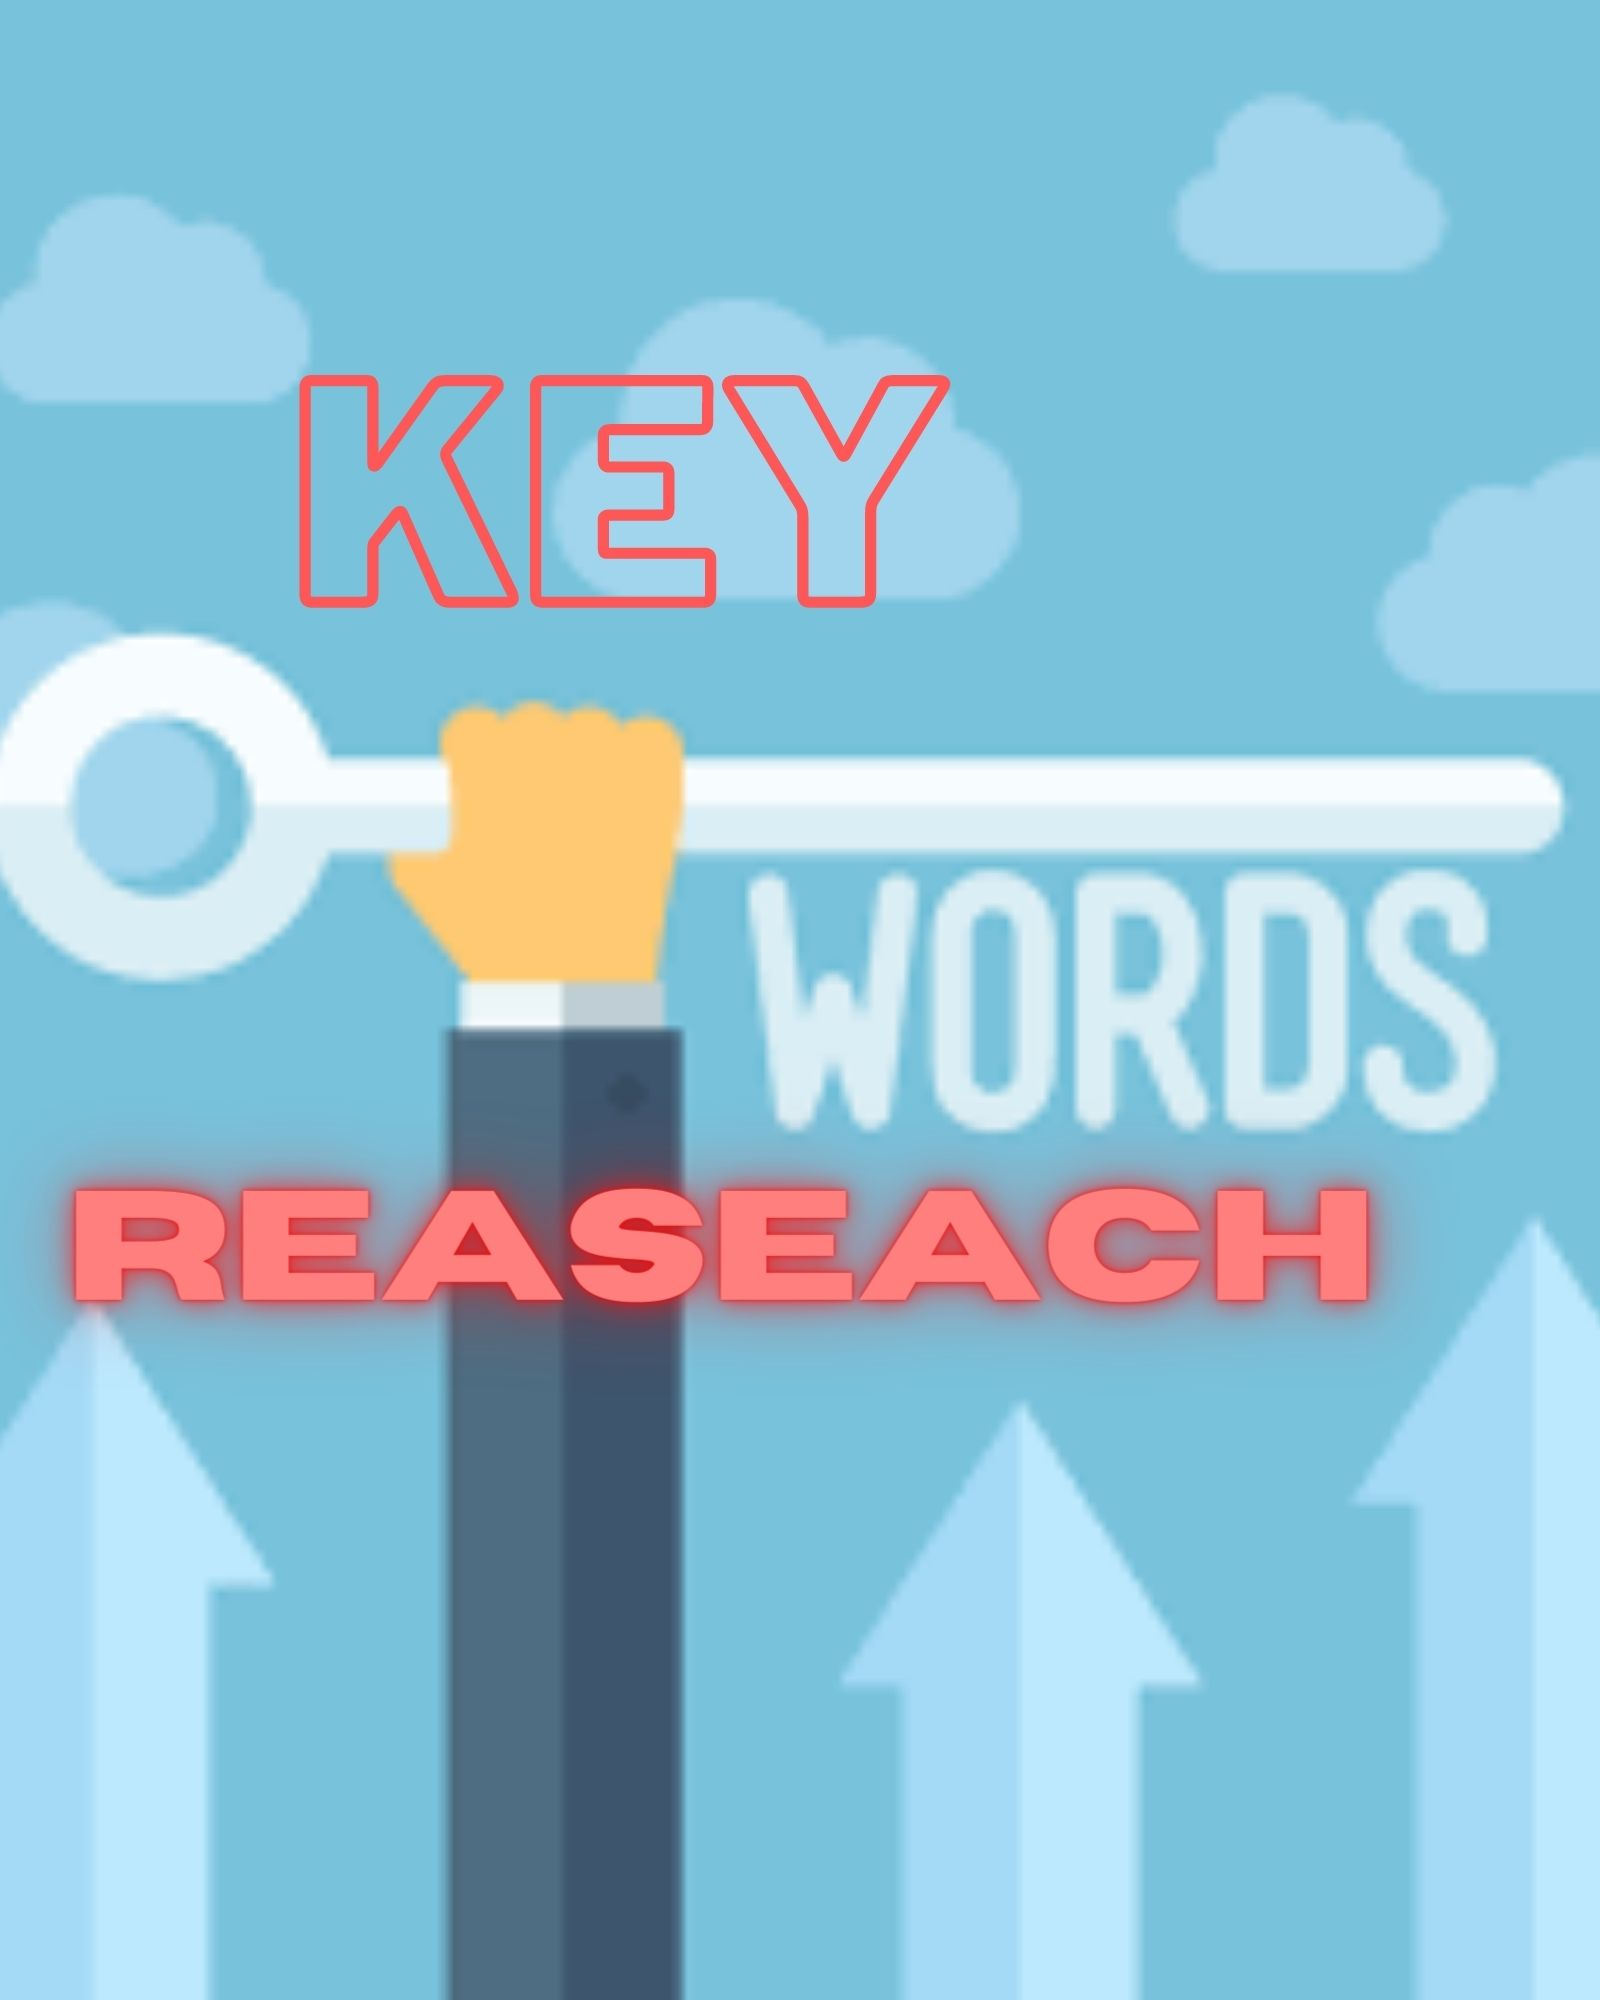 SEO Keyword research and competitor analysis for your website